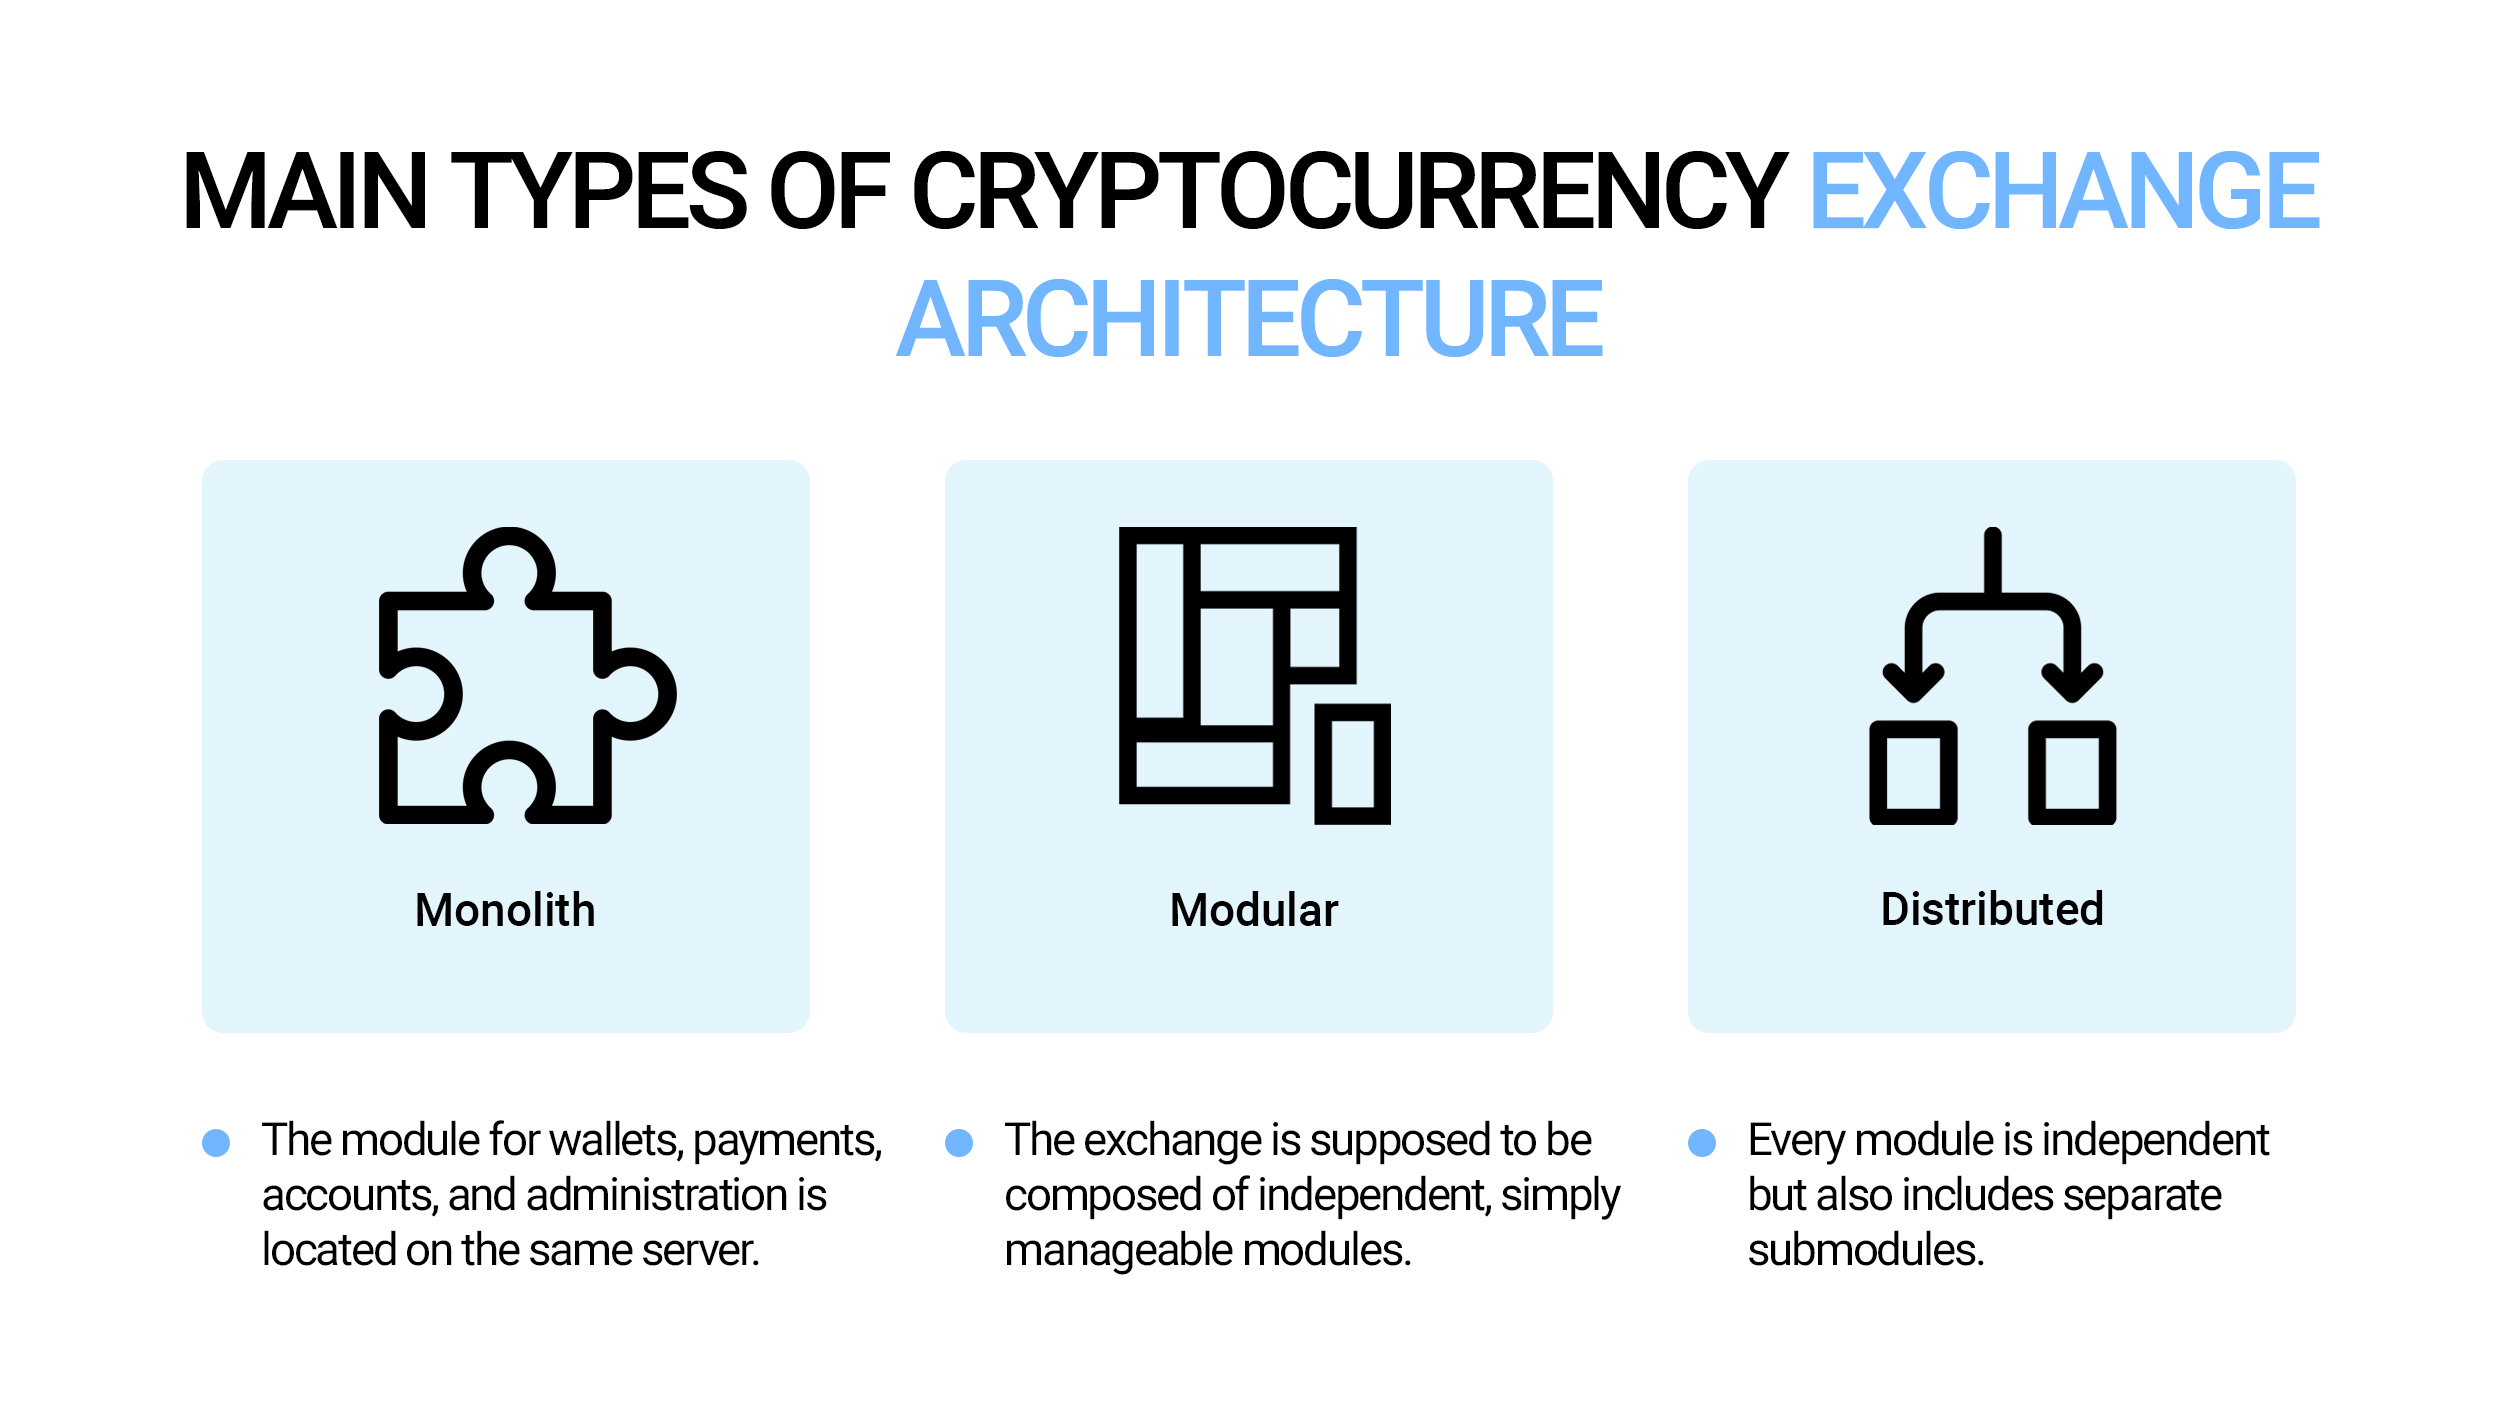 Main types of cryptocurrency exchange architecture